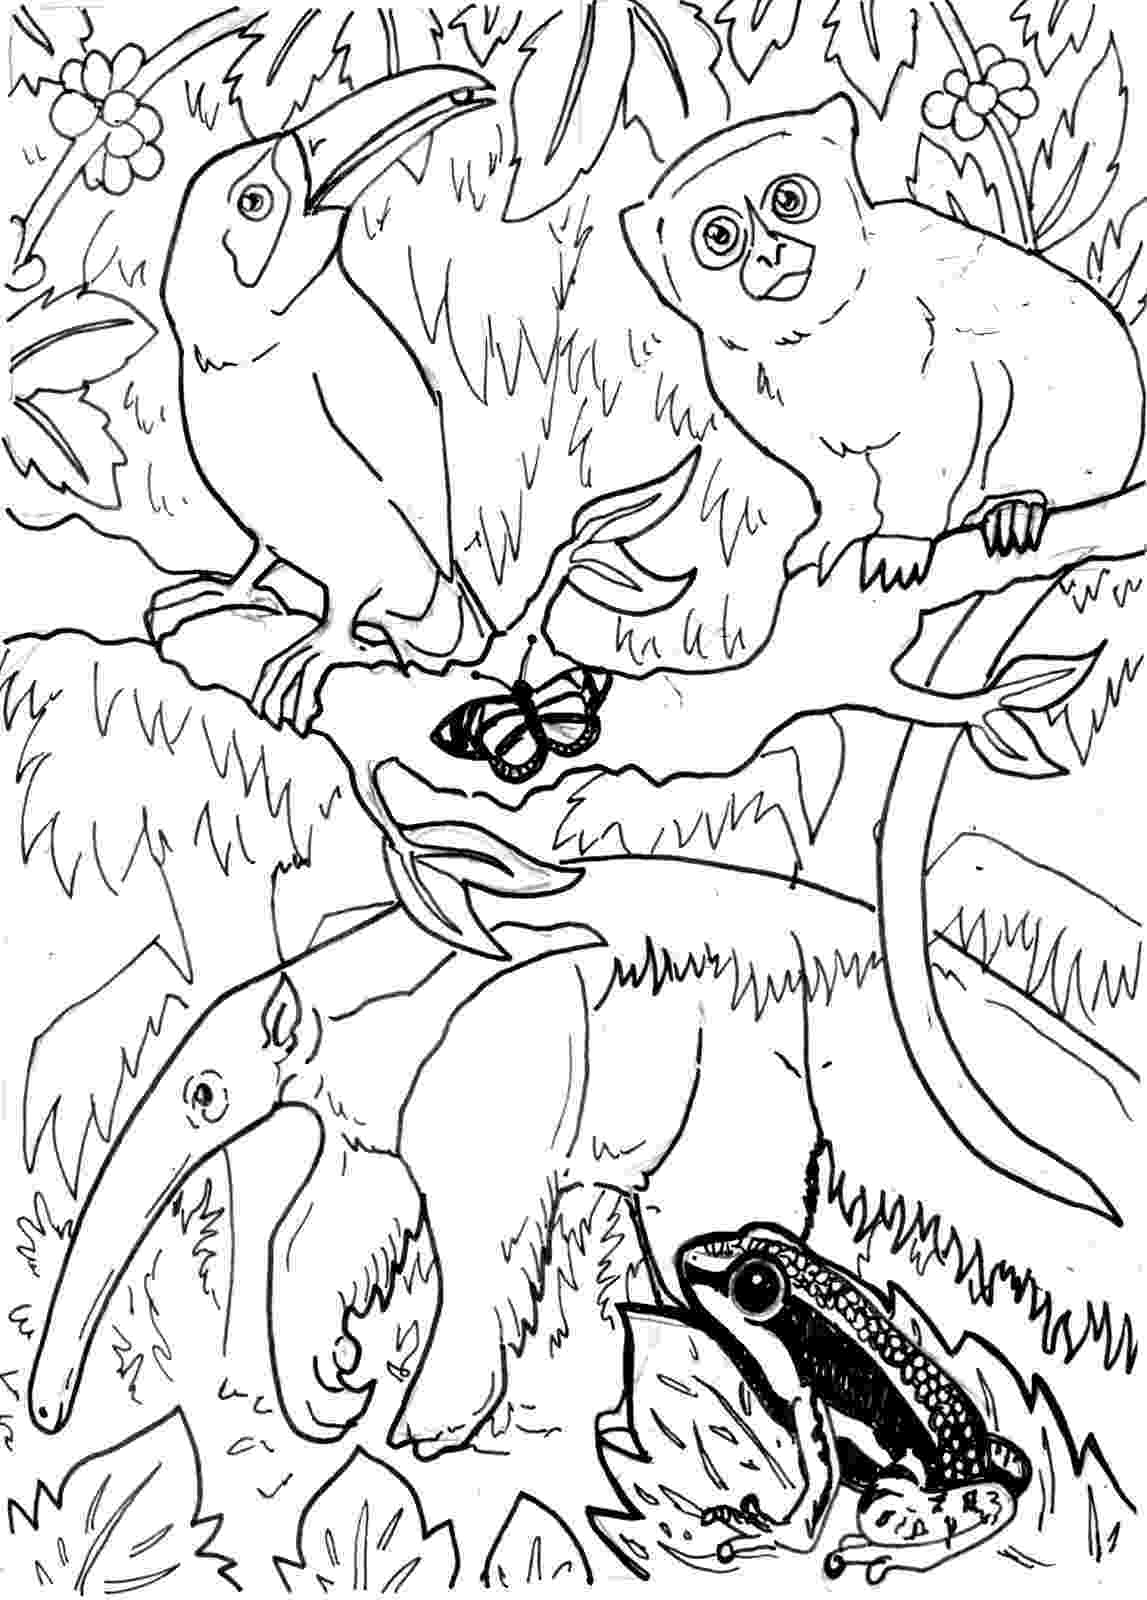 colouring sheets forest animals the daily art of lemurkat colouring pages sheets forest animals colouring